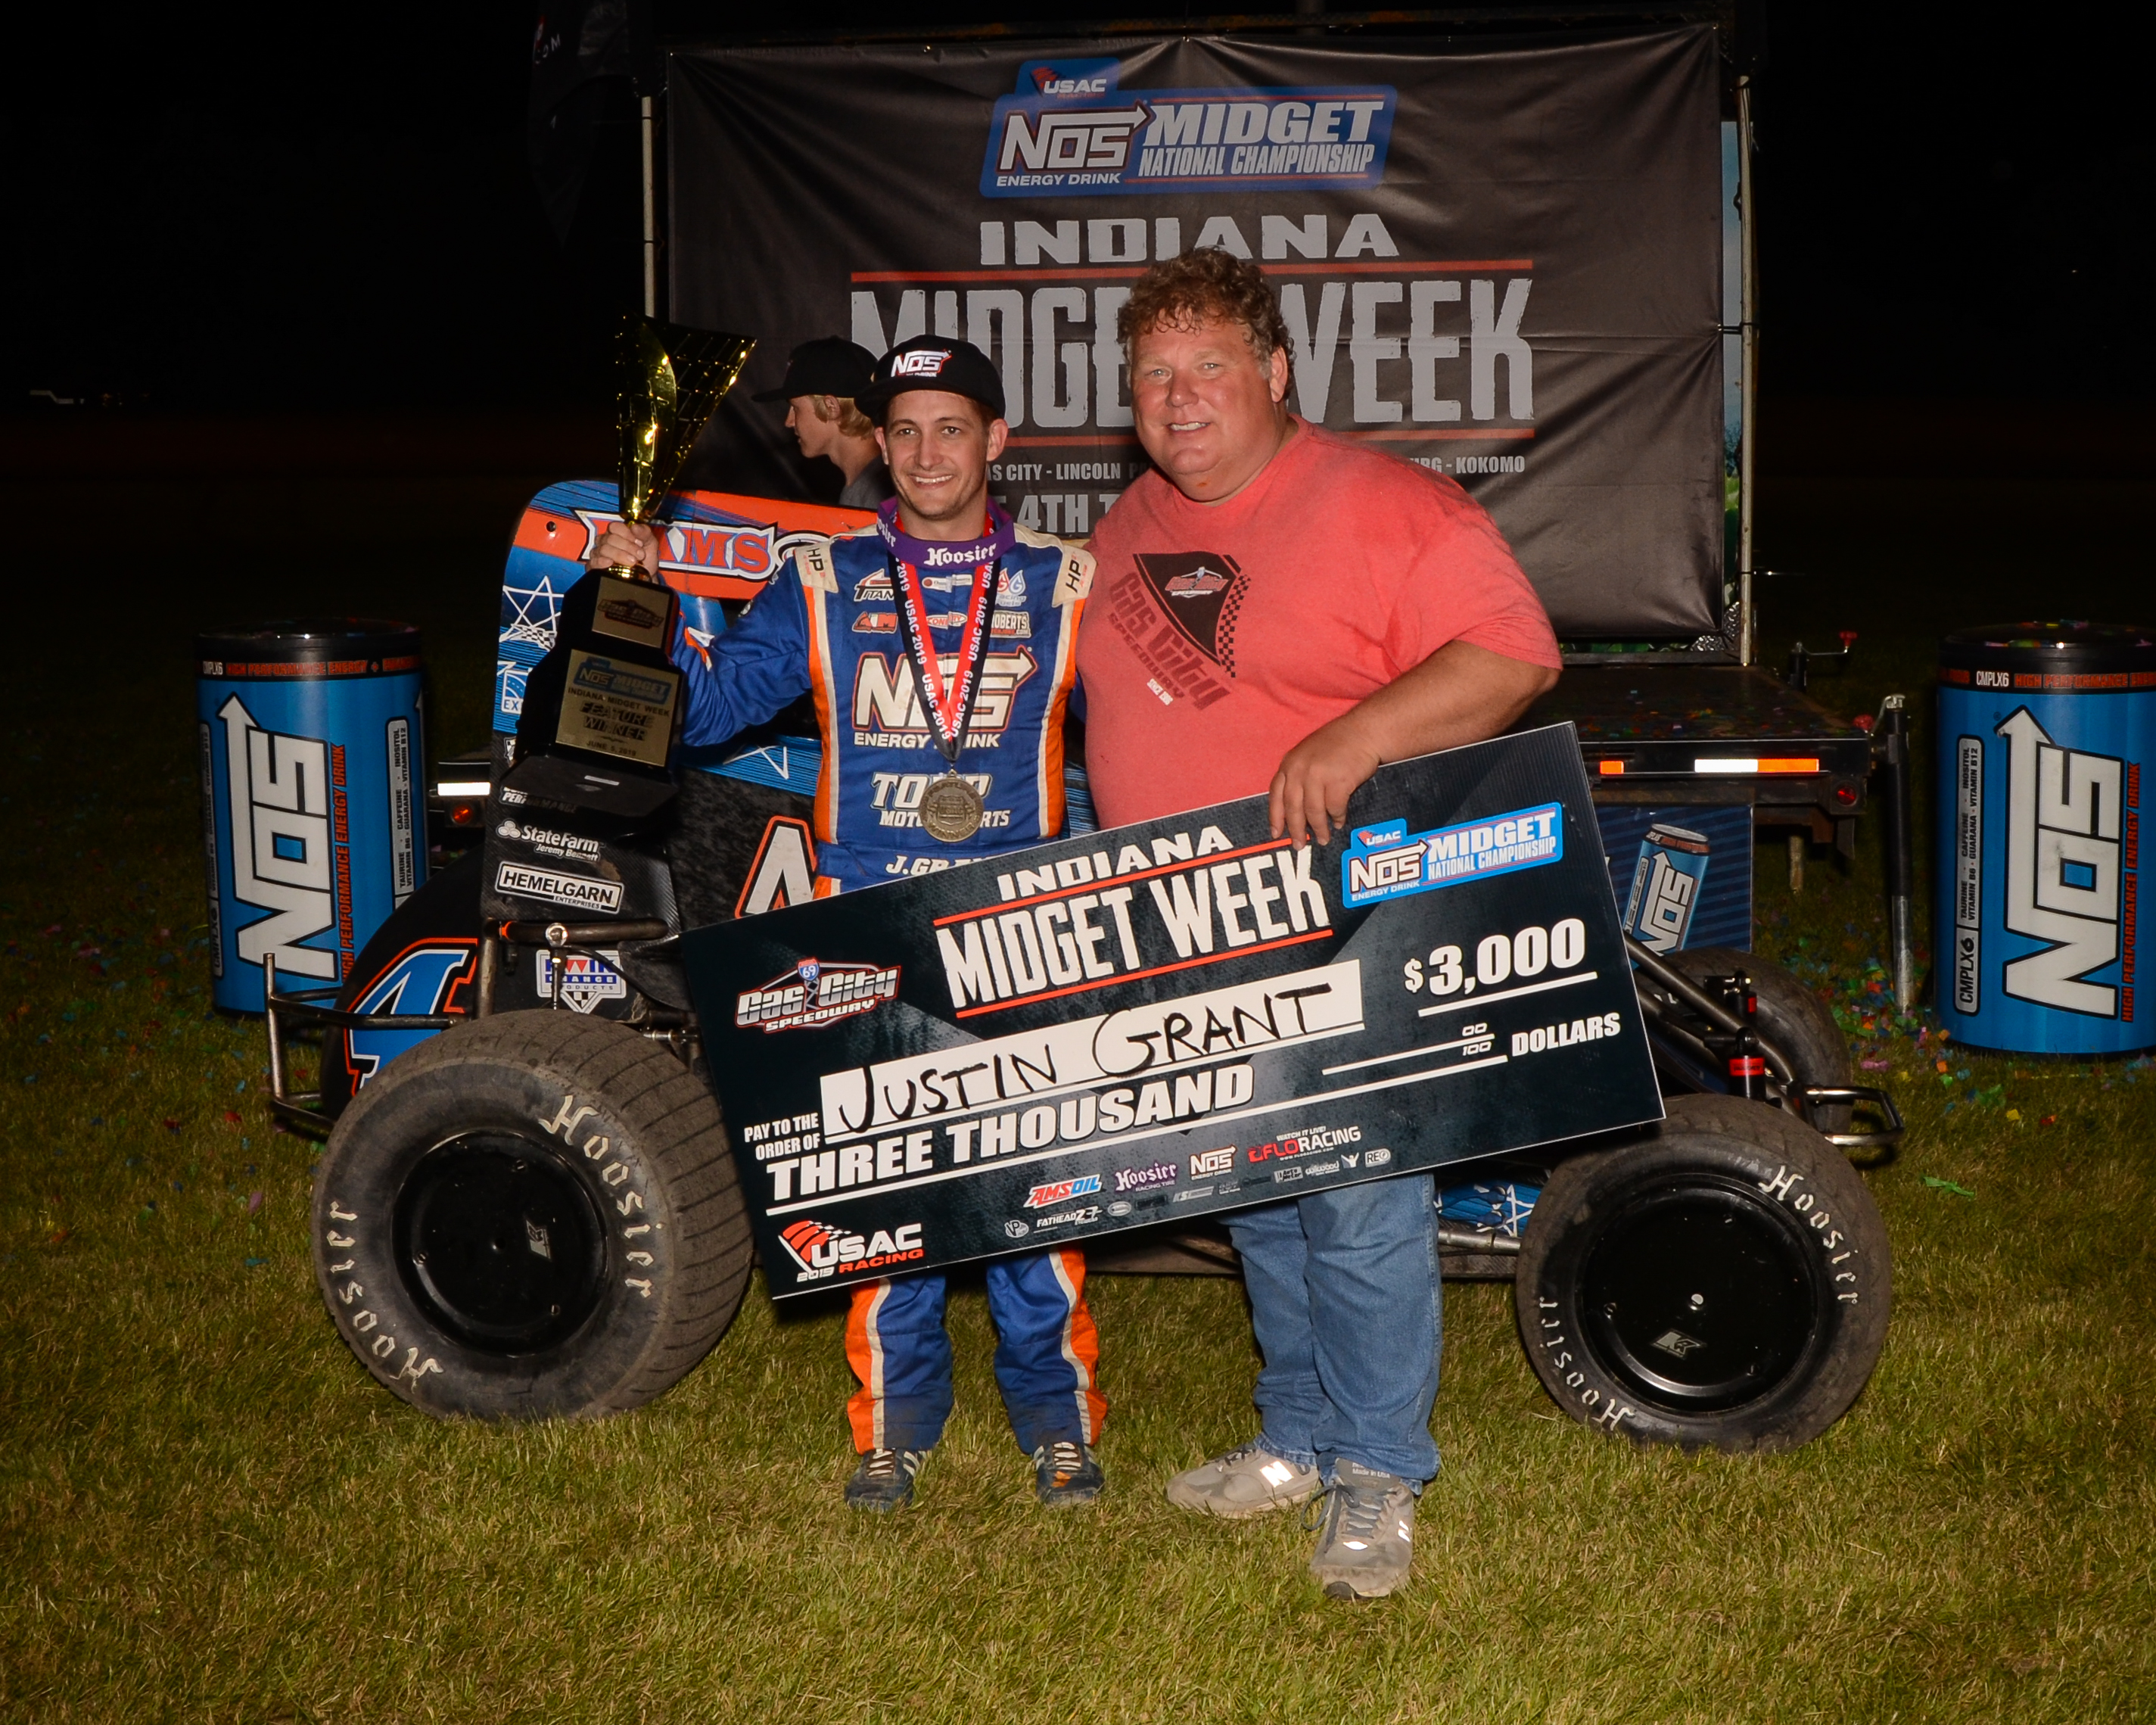 Grant Leads All The Way To Win USAC Indiana Midget Week